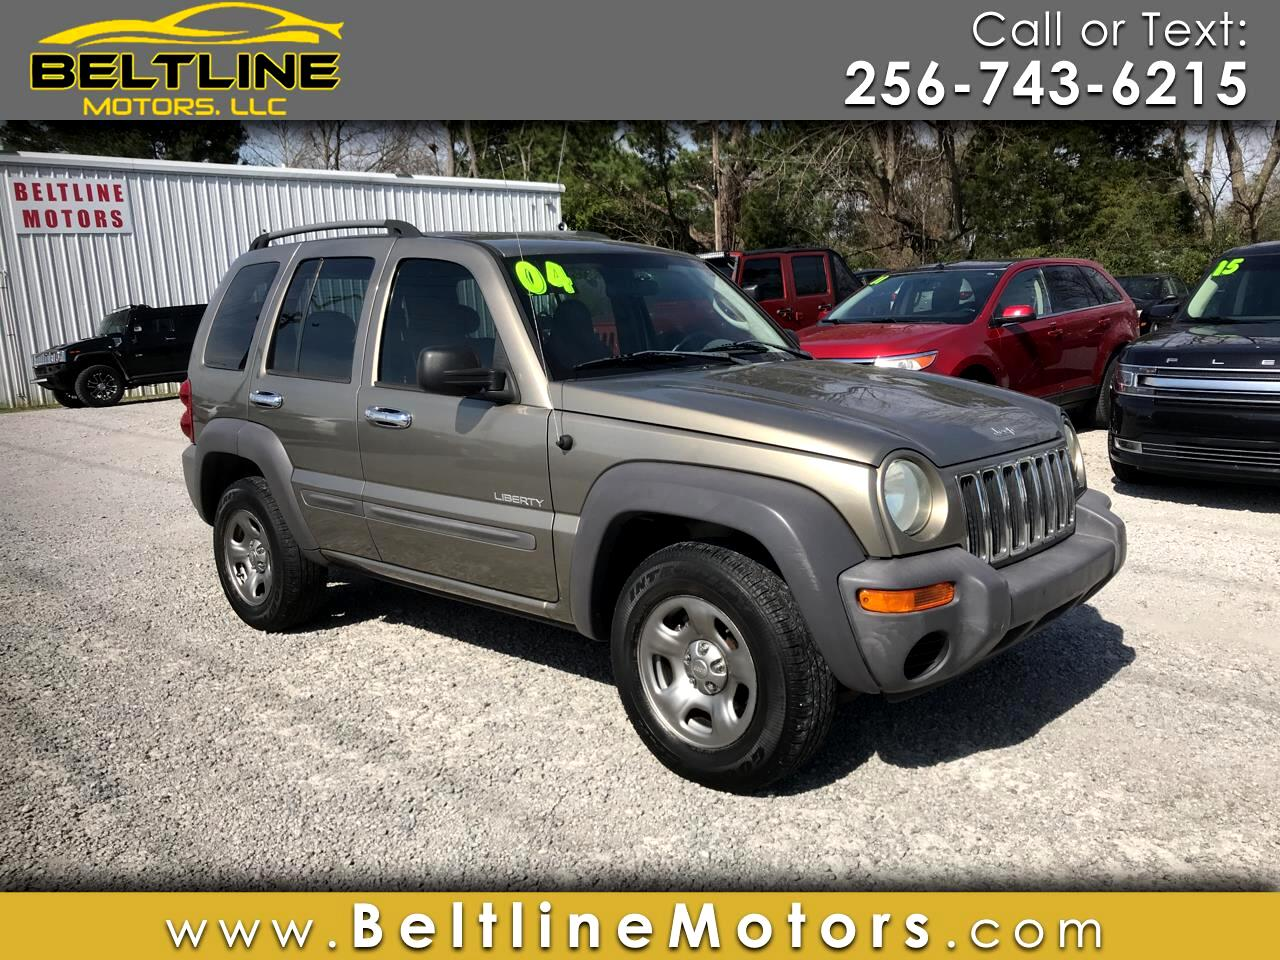 2004 Jeep Liberty 4dr Sport